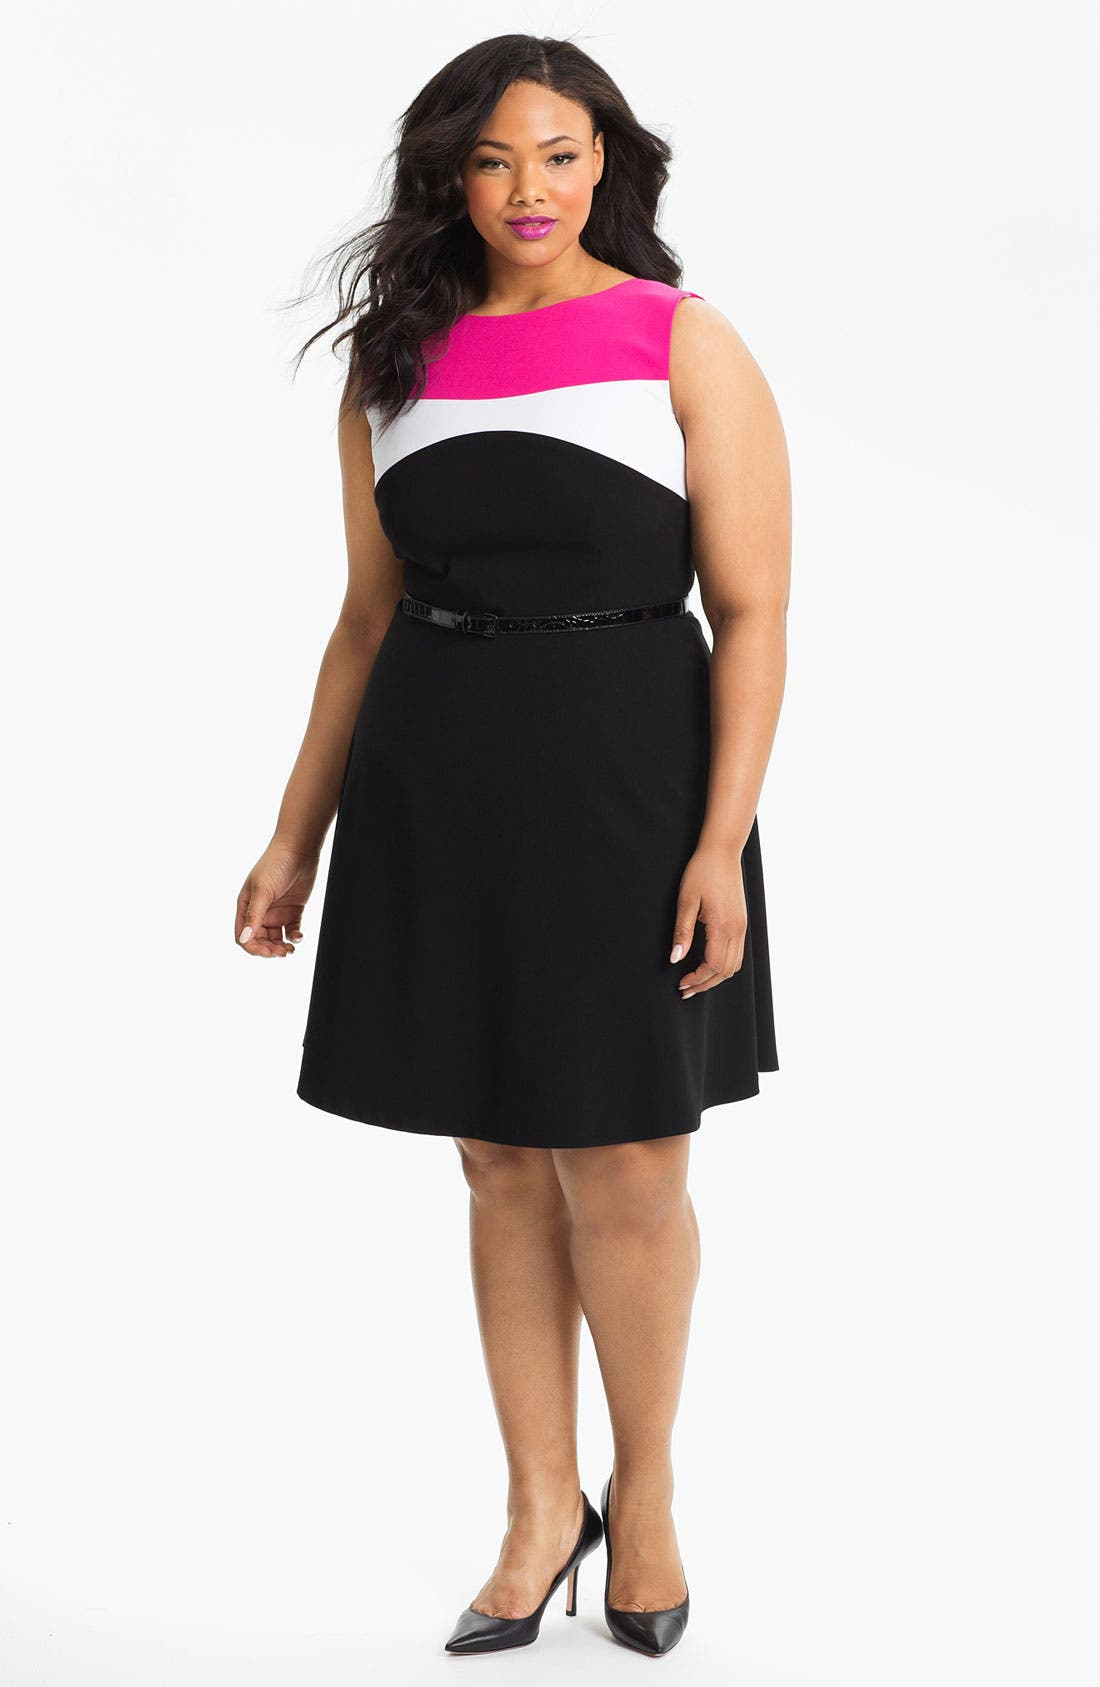 Alternate Image 1 Selected - Calvin Klein Colorblock Fit & Flare Dress (Plus Size)